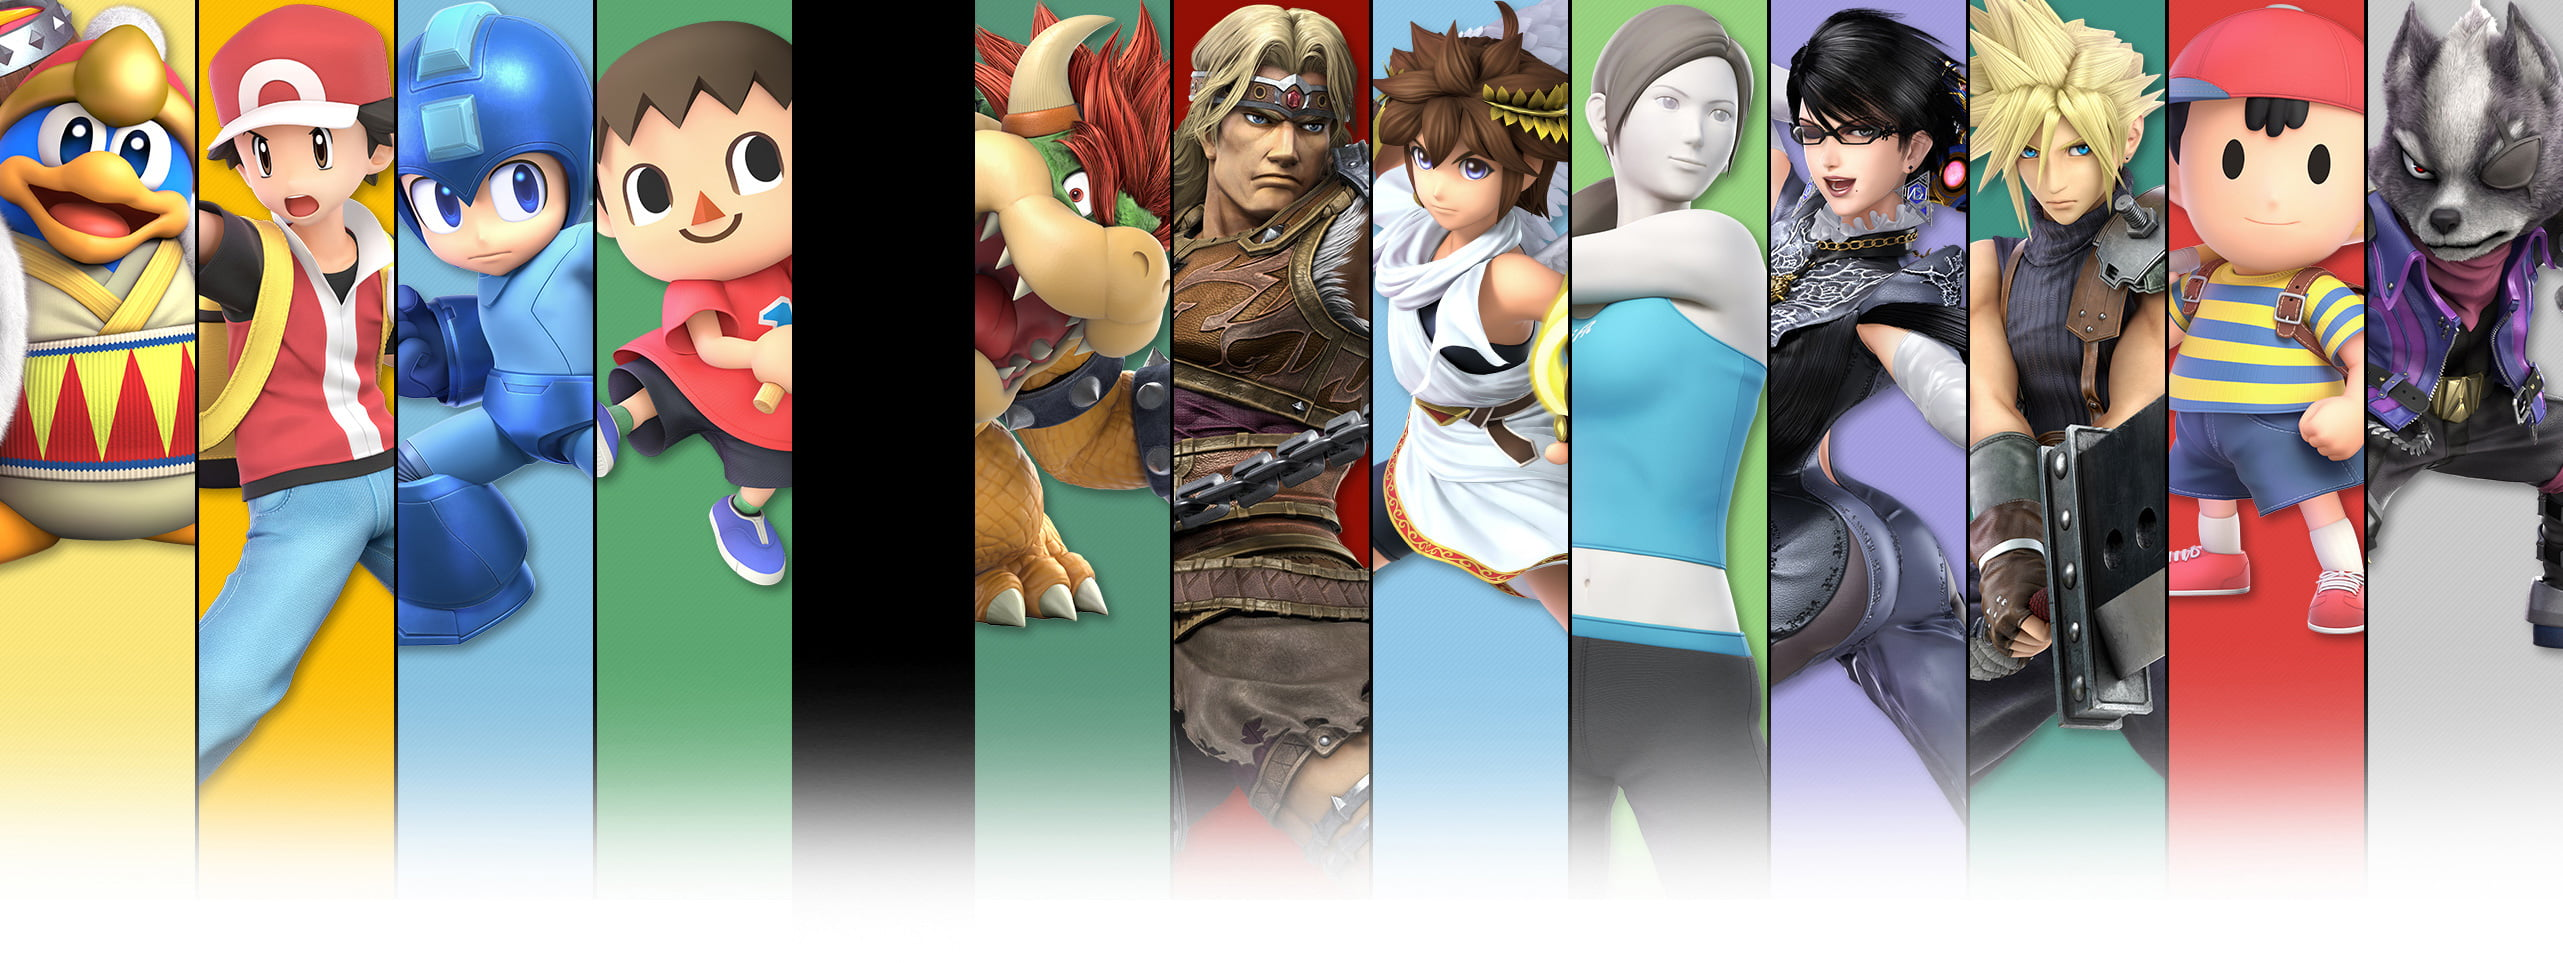 Fighters | Super Smash Bros  Ultimate for the Nintendo